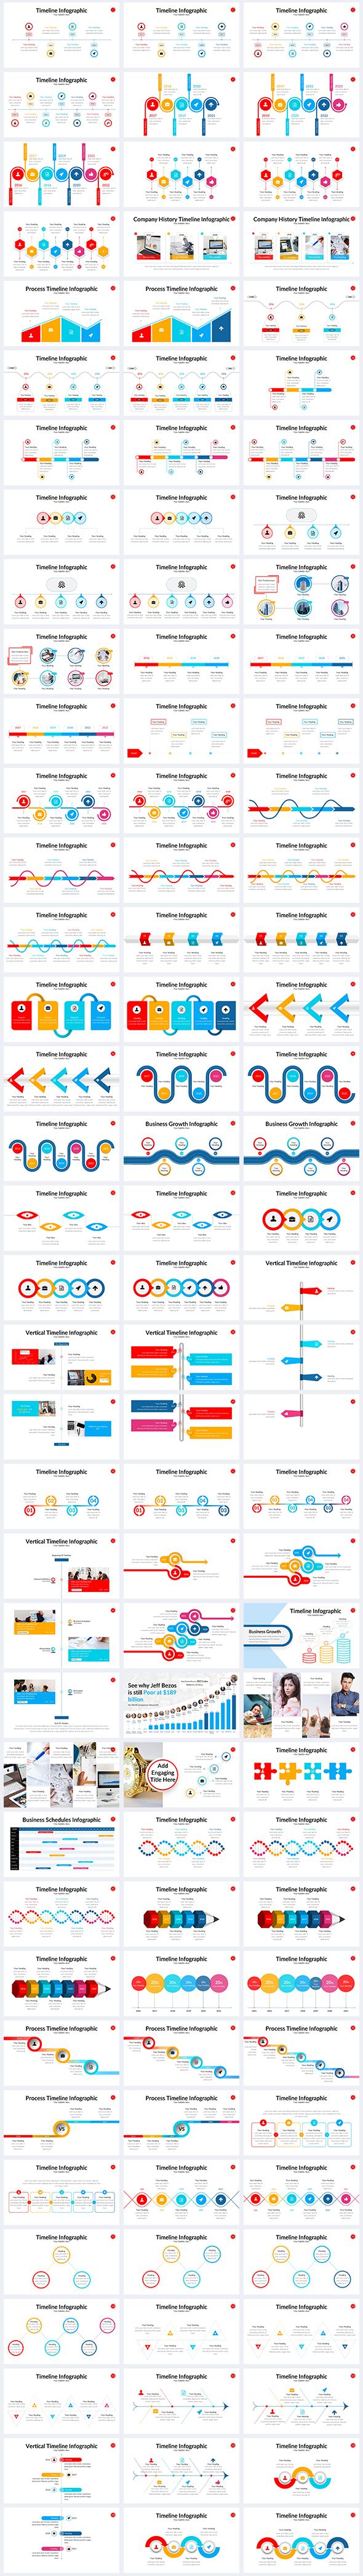 Timeline-Infographic-Power-Point-Template